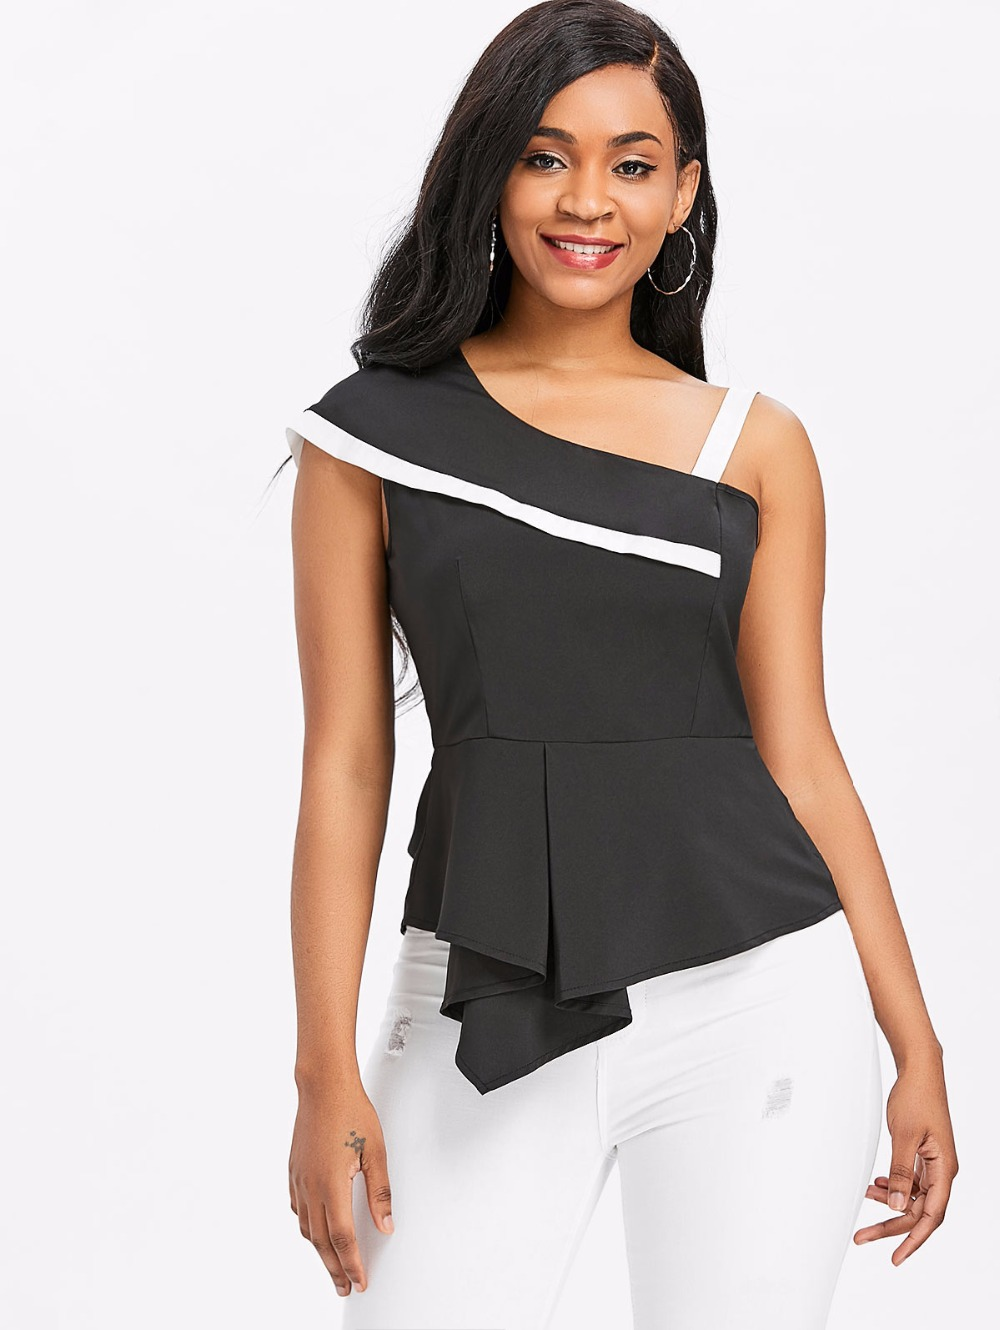 VESTLINDA One Shoulder Skew Neck Peplum Asymmetrical Black Blouse Womens Tops and Blouses Summer Top 2018 Clothes Blouse Shirt 1